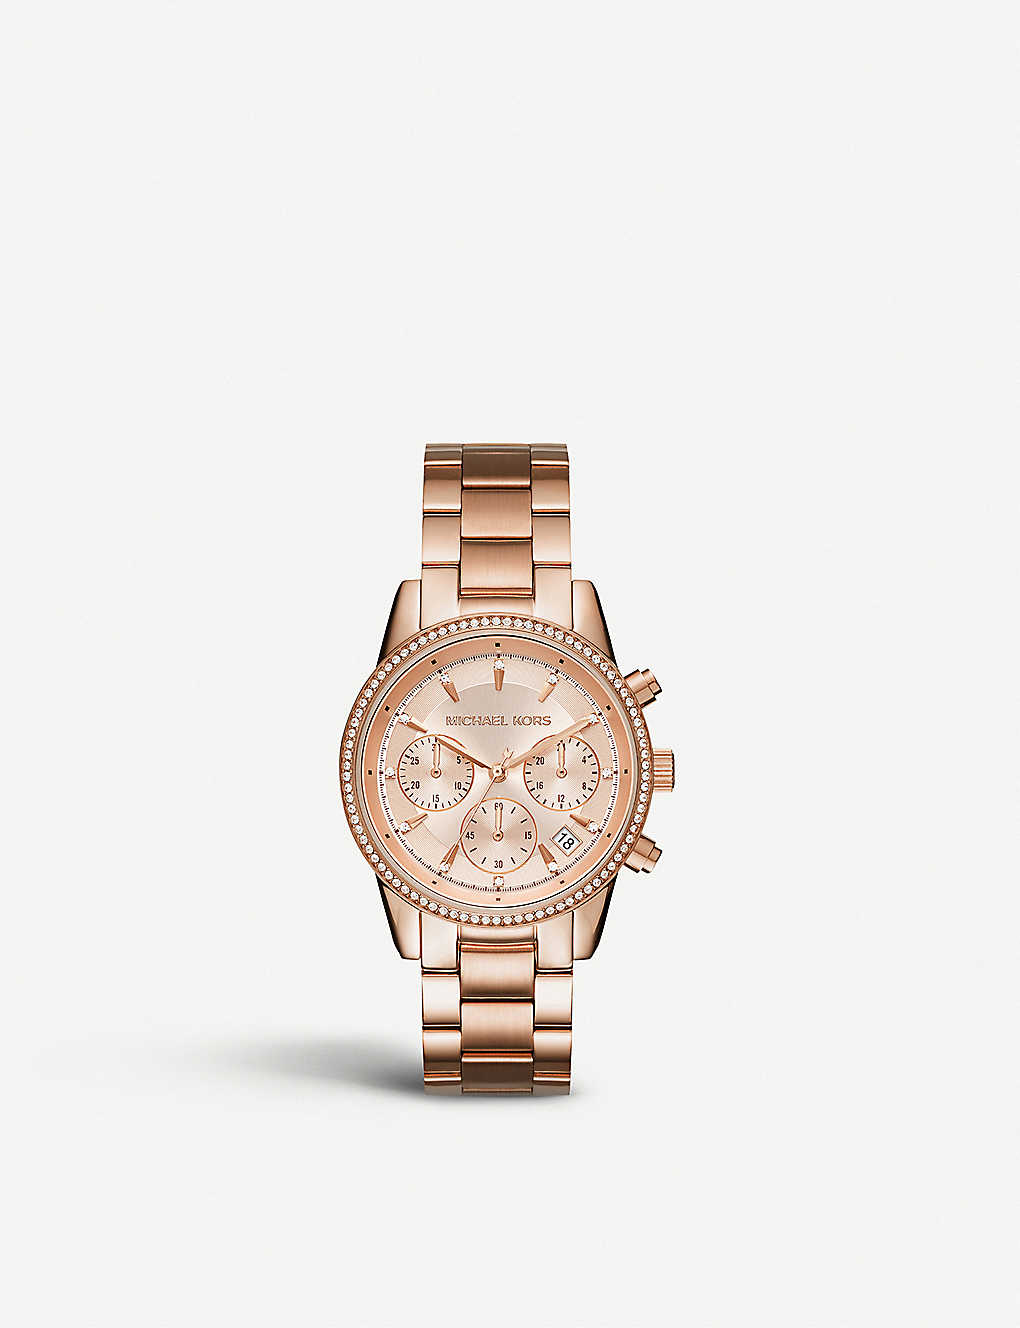 37175ab576b5 MICHAEL KORS - MK6357 Ritz crystal-encrusted stainless steel watch ...